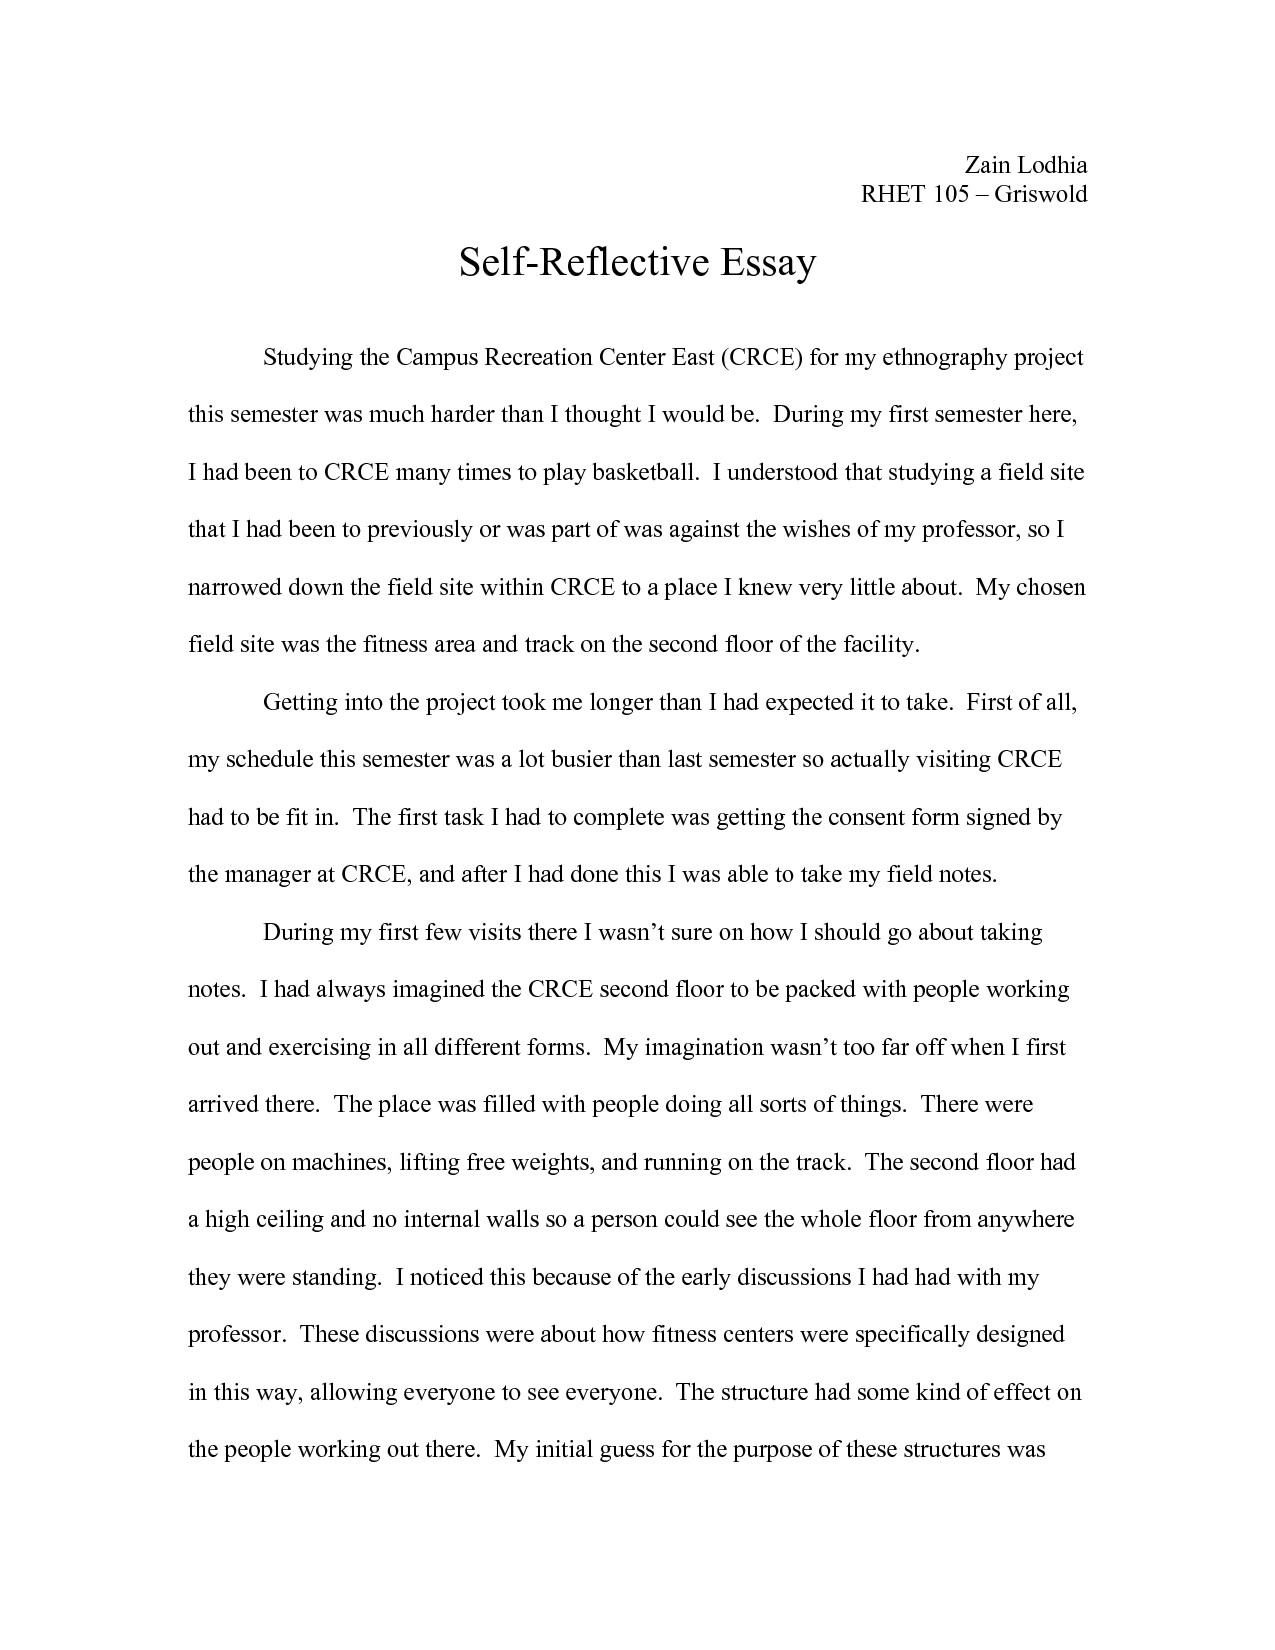 001 Essay Example Reflective Introduction Samples Of Essays How To Start Surprising A Write An Full